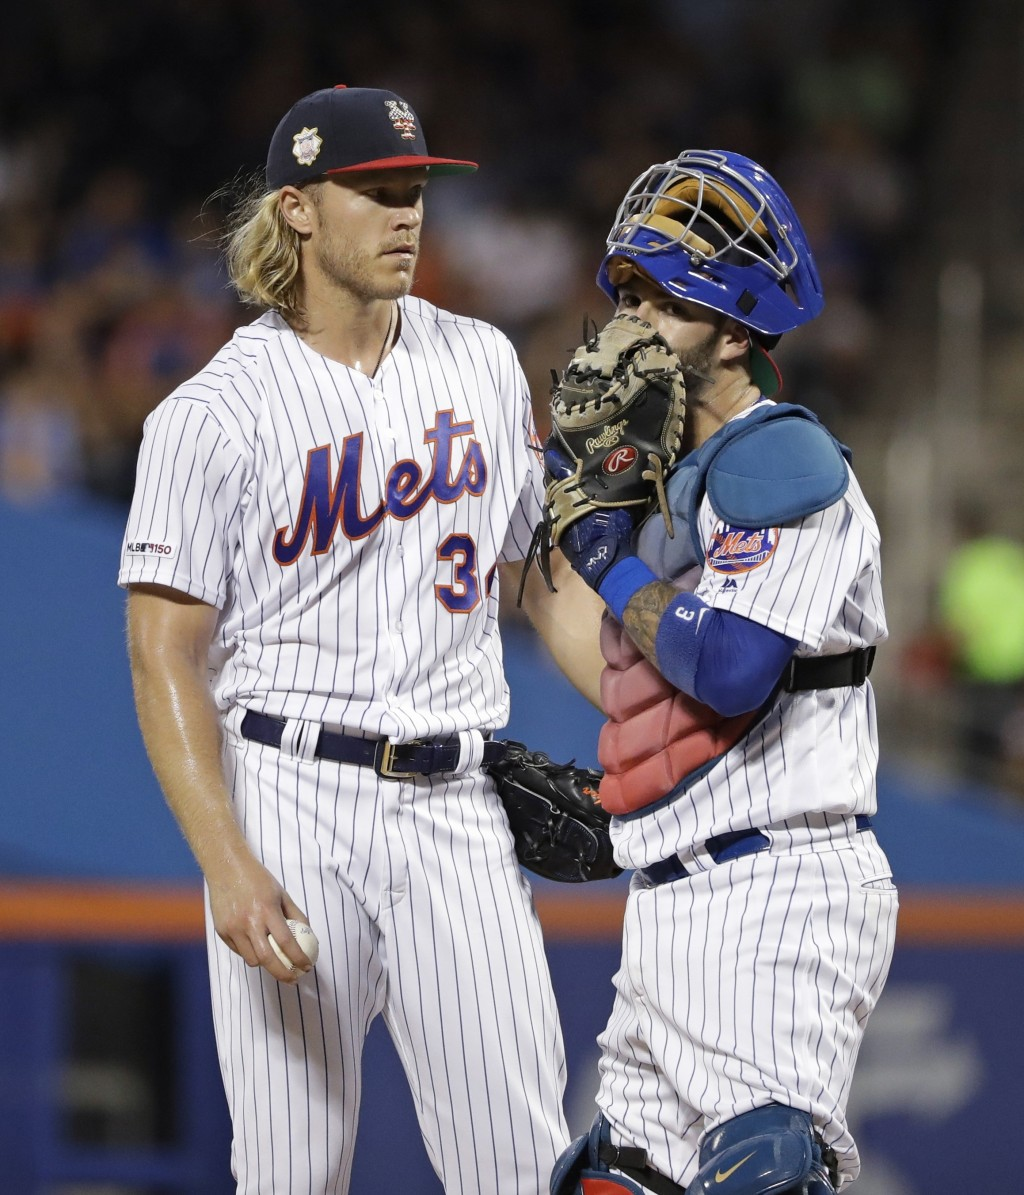 New York Mets starting pitcher Noah Syndergaard, left, talks with catcher Tomas Nido during the second inning of a baseball game against the New York